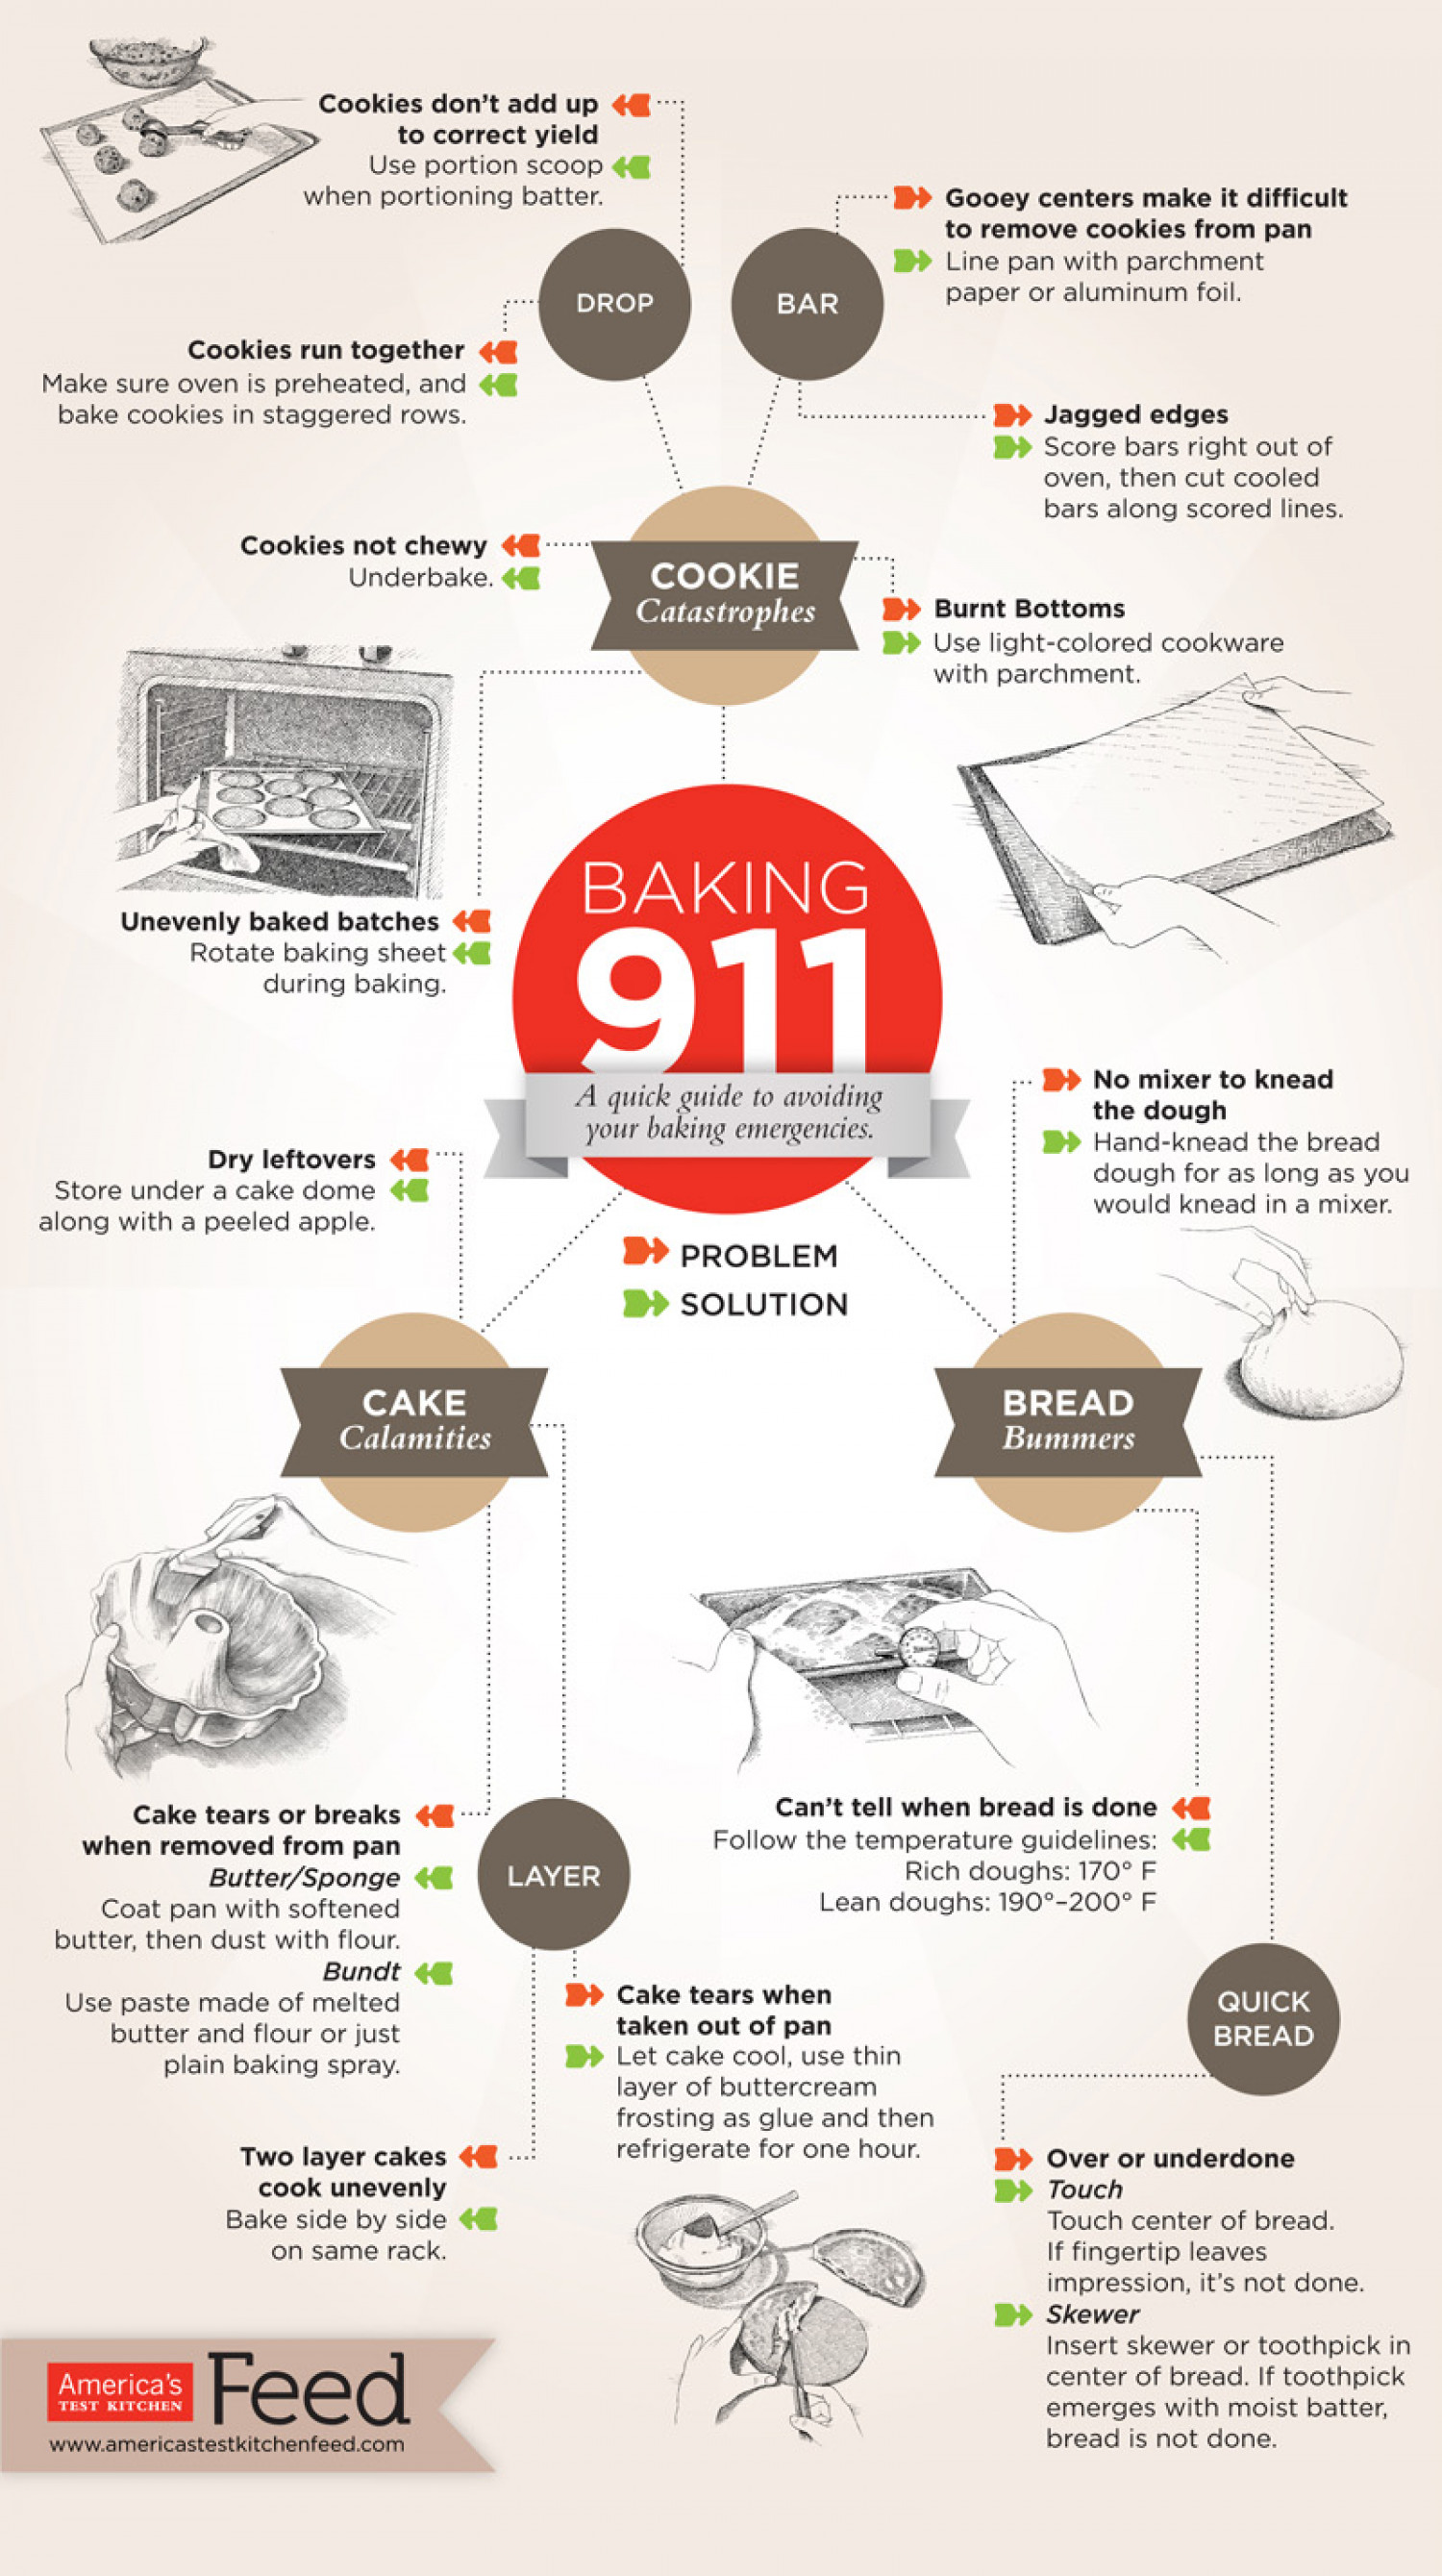 Baking 911 Infographic